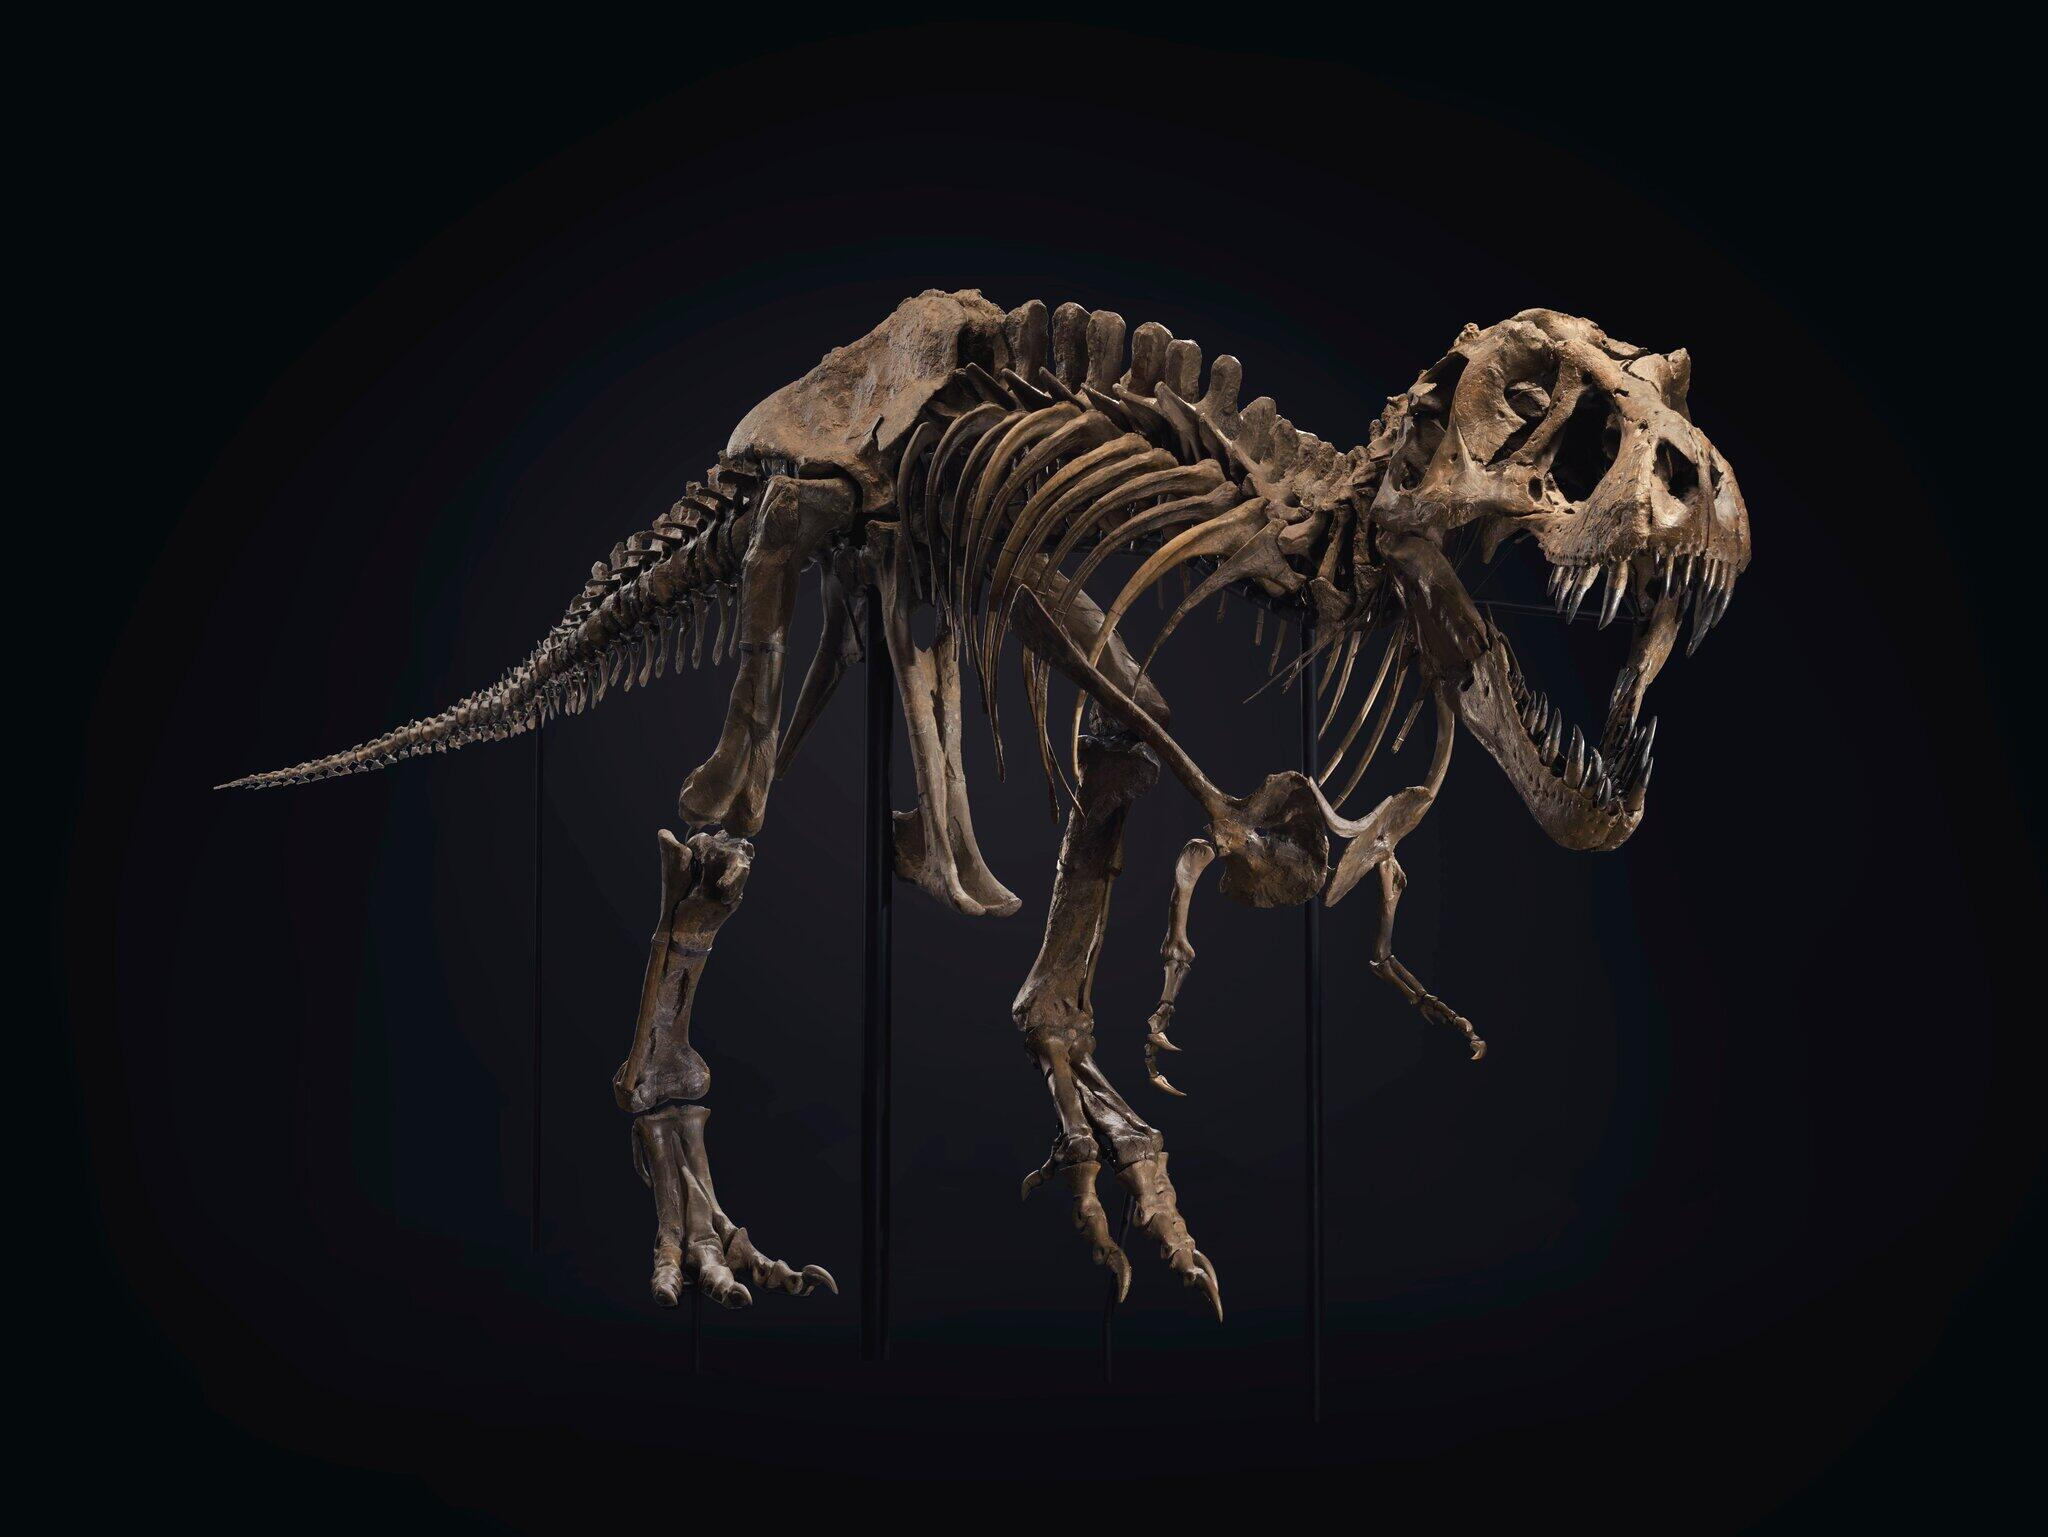 <p>Stan the T. rex is a rare fossil skeleton in private hands.&nbsp;</p>